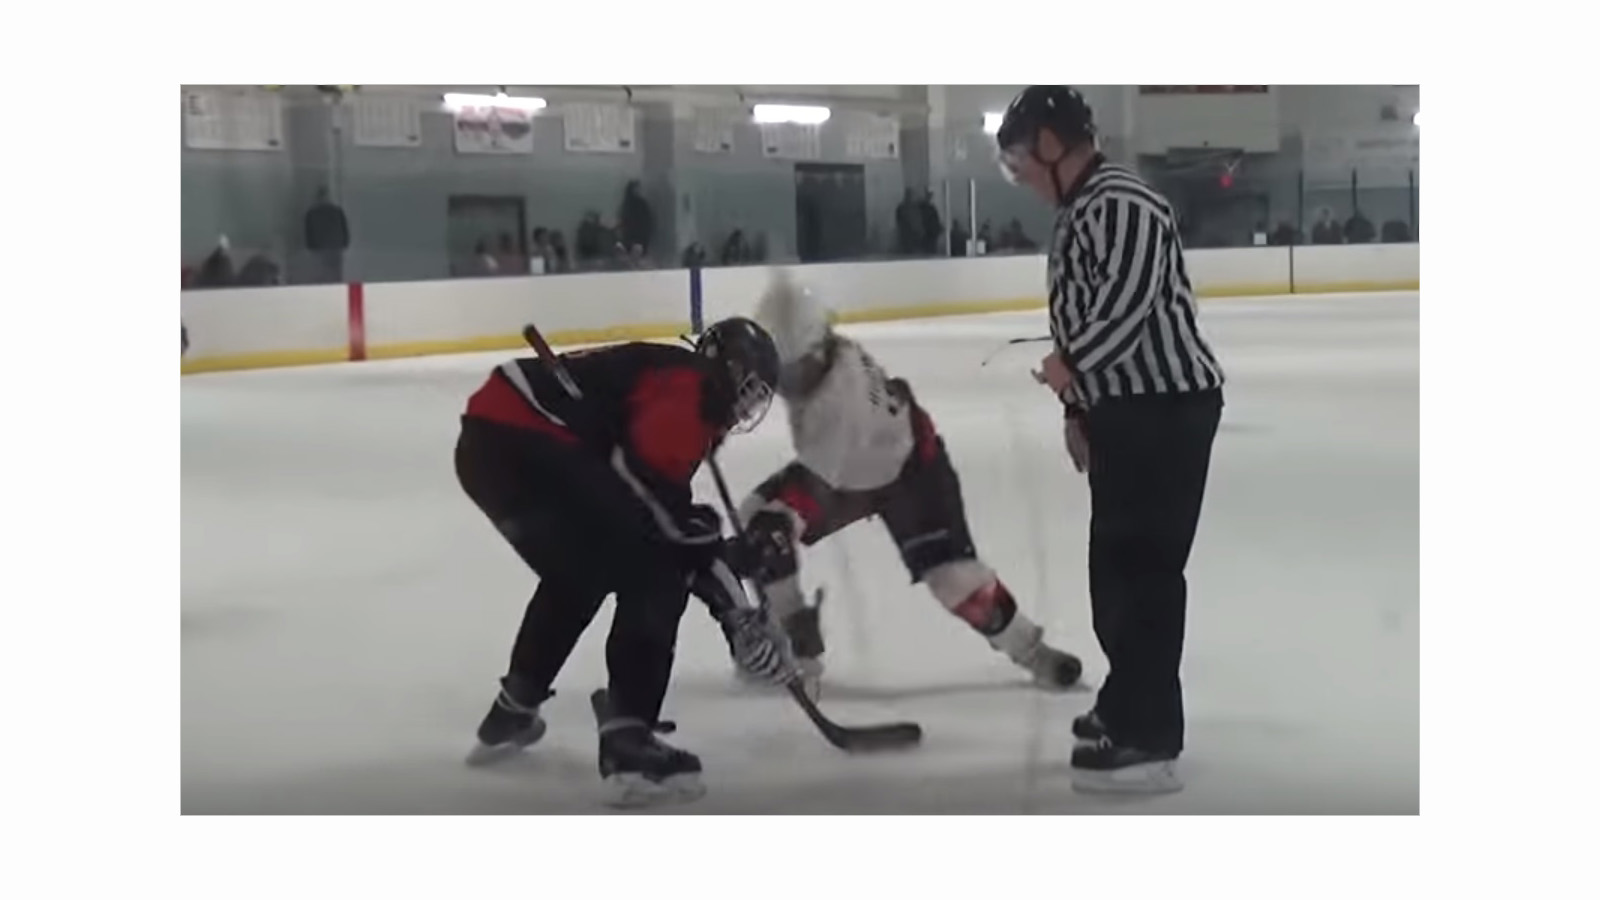 A still image from a YouTube video of an 18-and-under hockey game from Jan. 20 at the Northtown Center between the Cheektowaga Warriors and Amherst Youth Hockey.